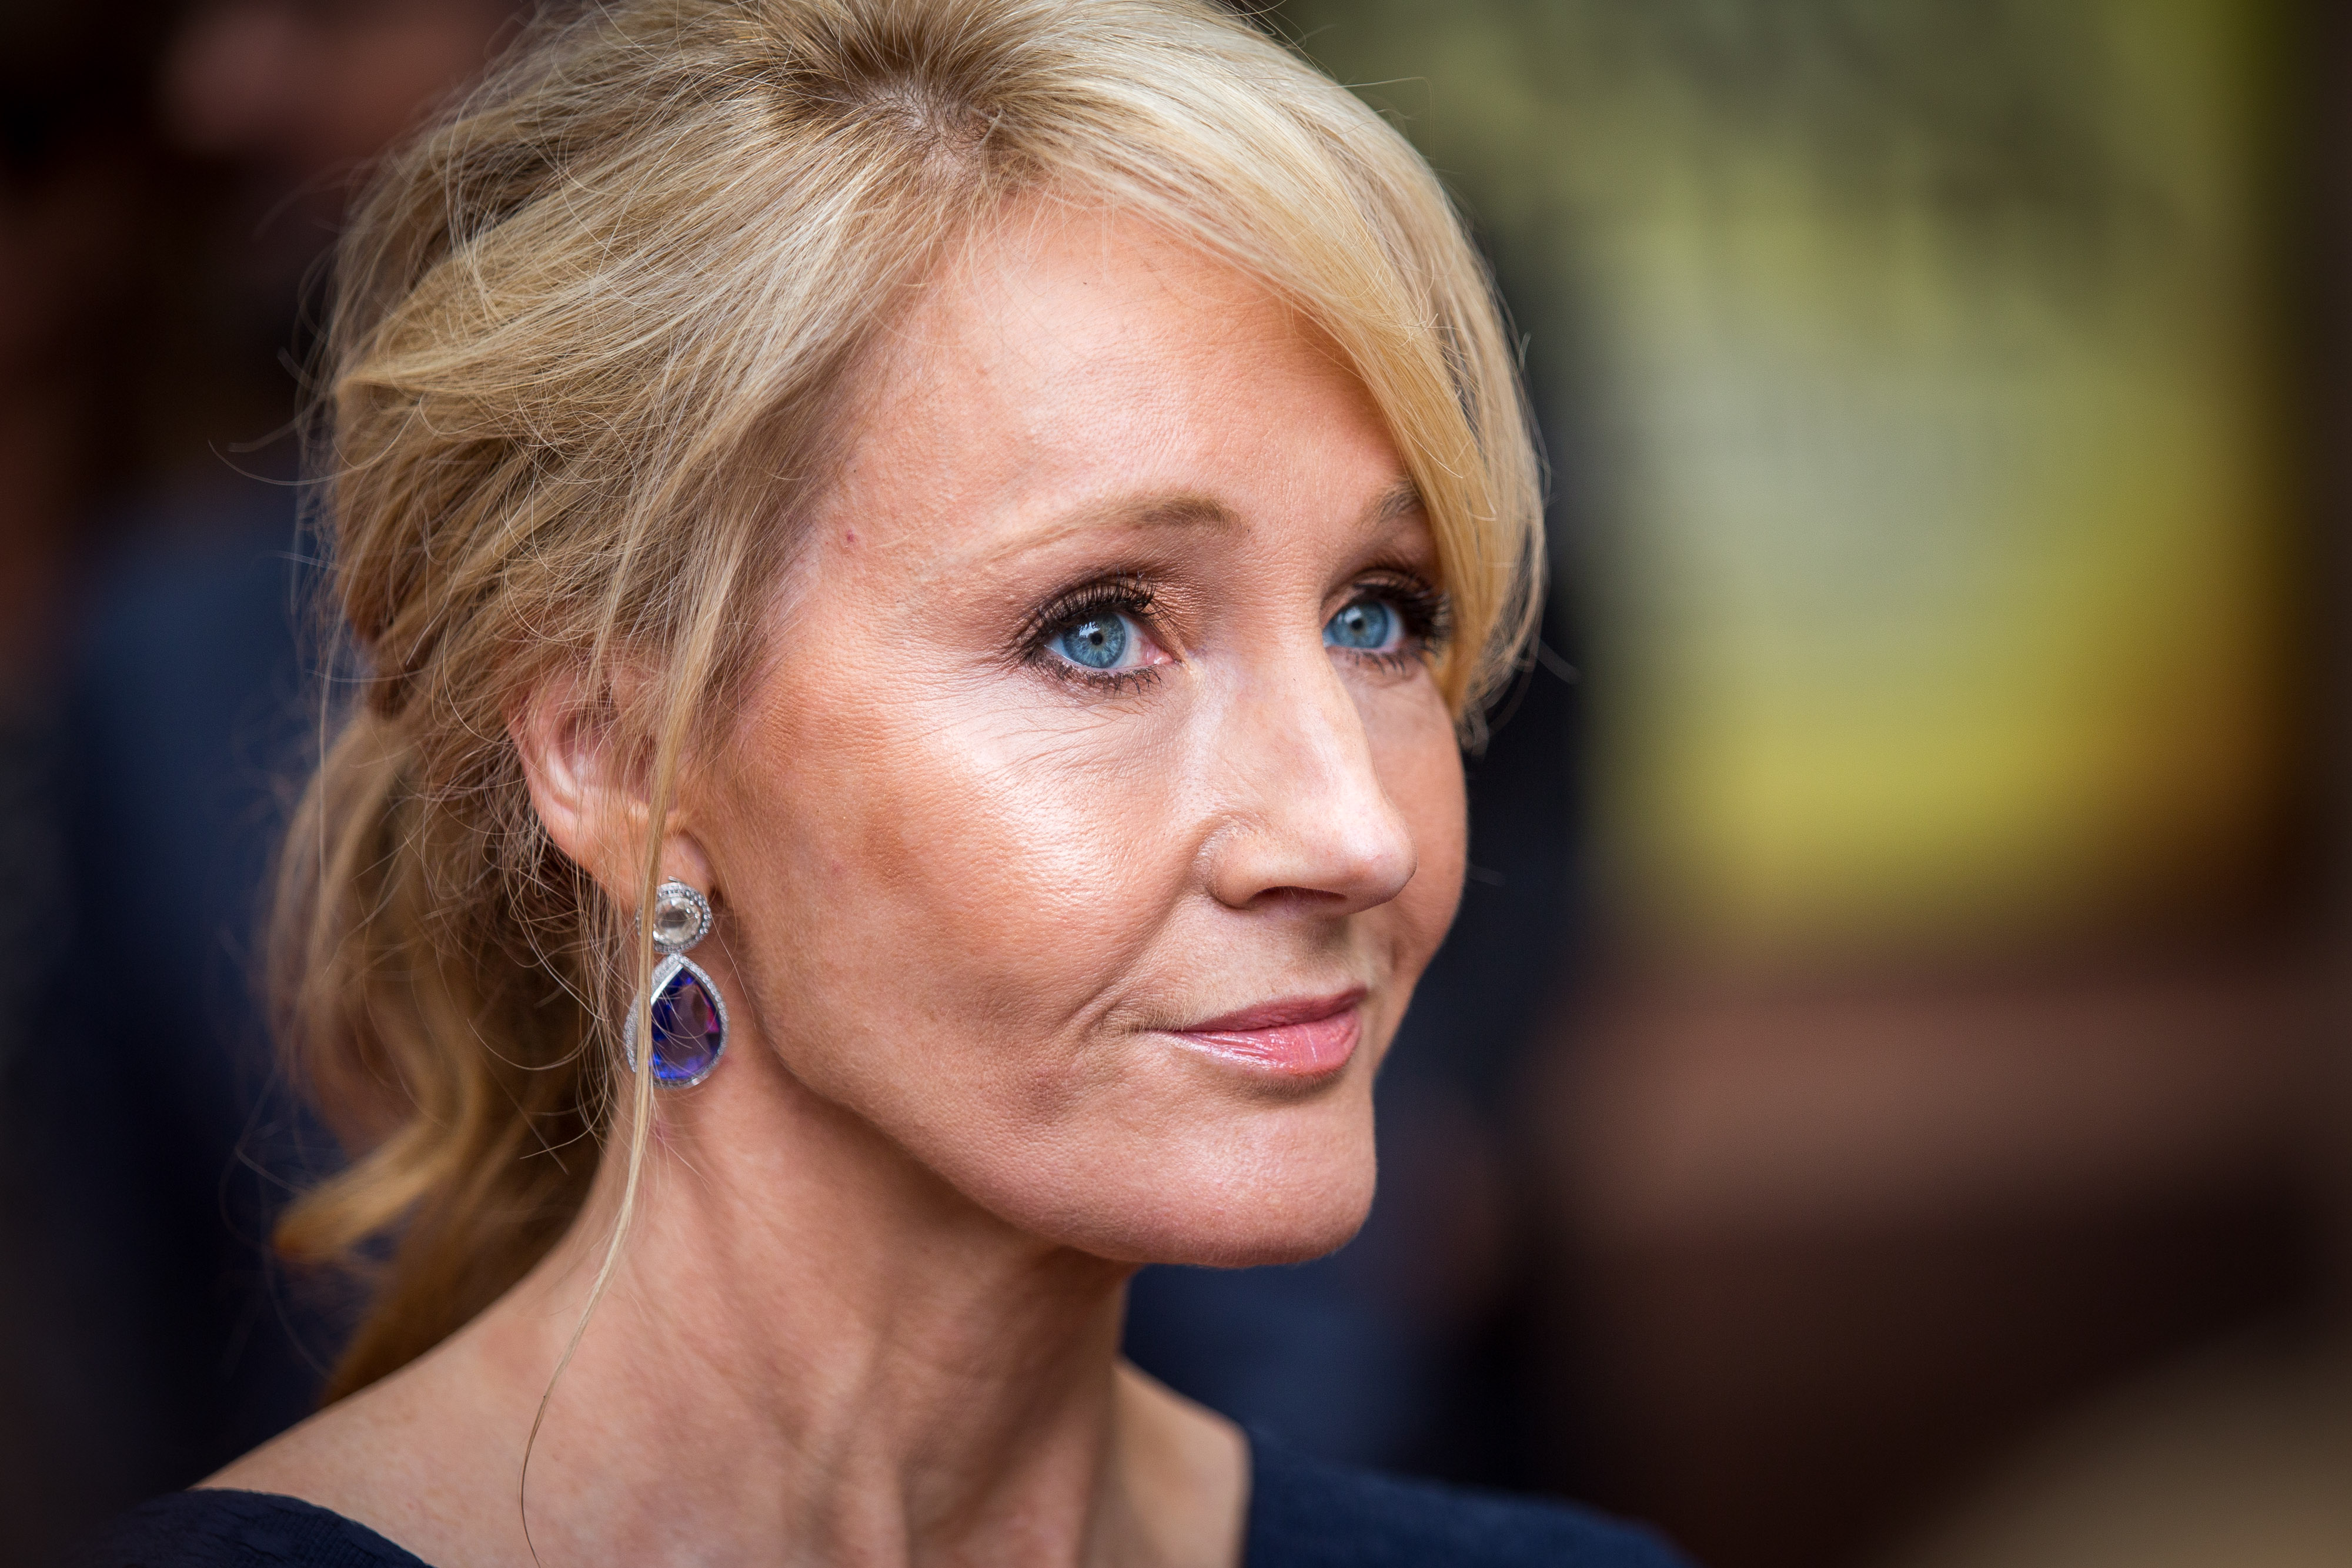 J. K. Rowling attends the press preview of  Harry Potter & The Cursed Child  at Palace Theatre on July 30, 2016 in London, England.